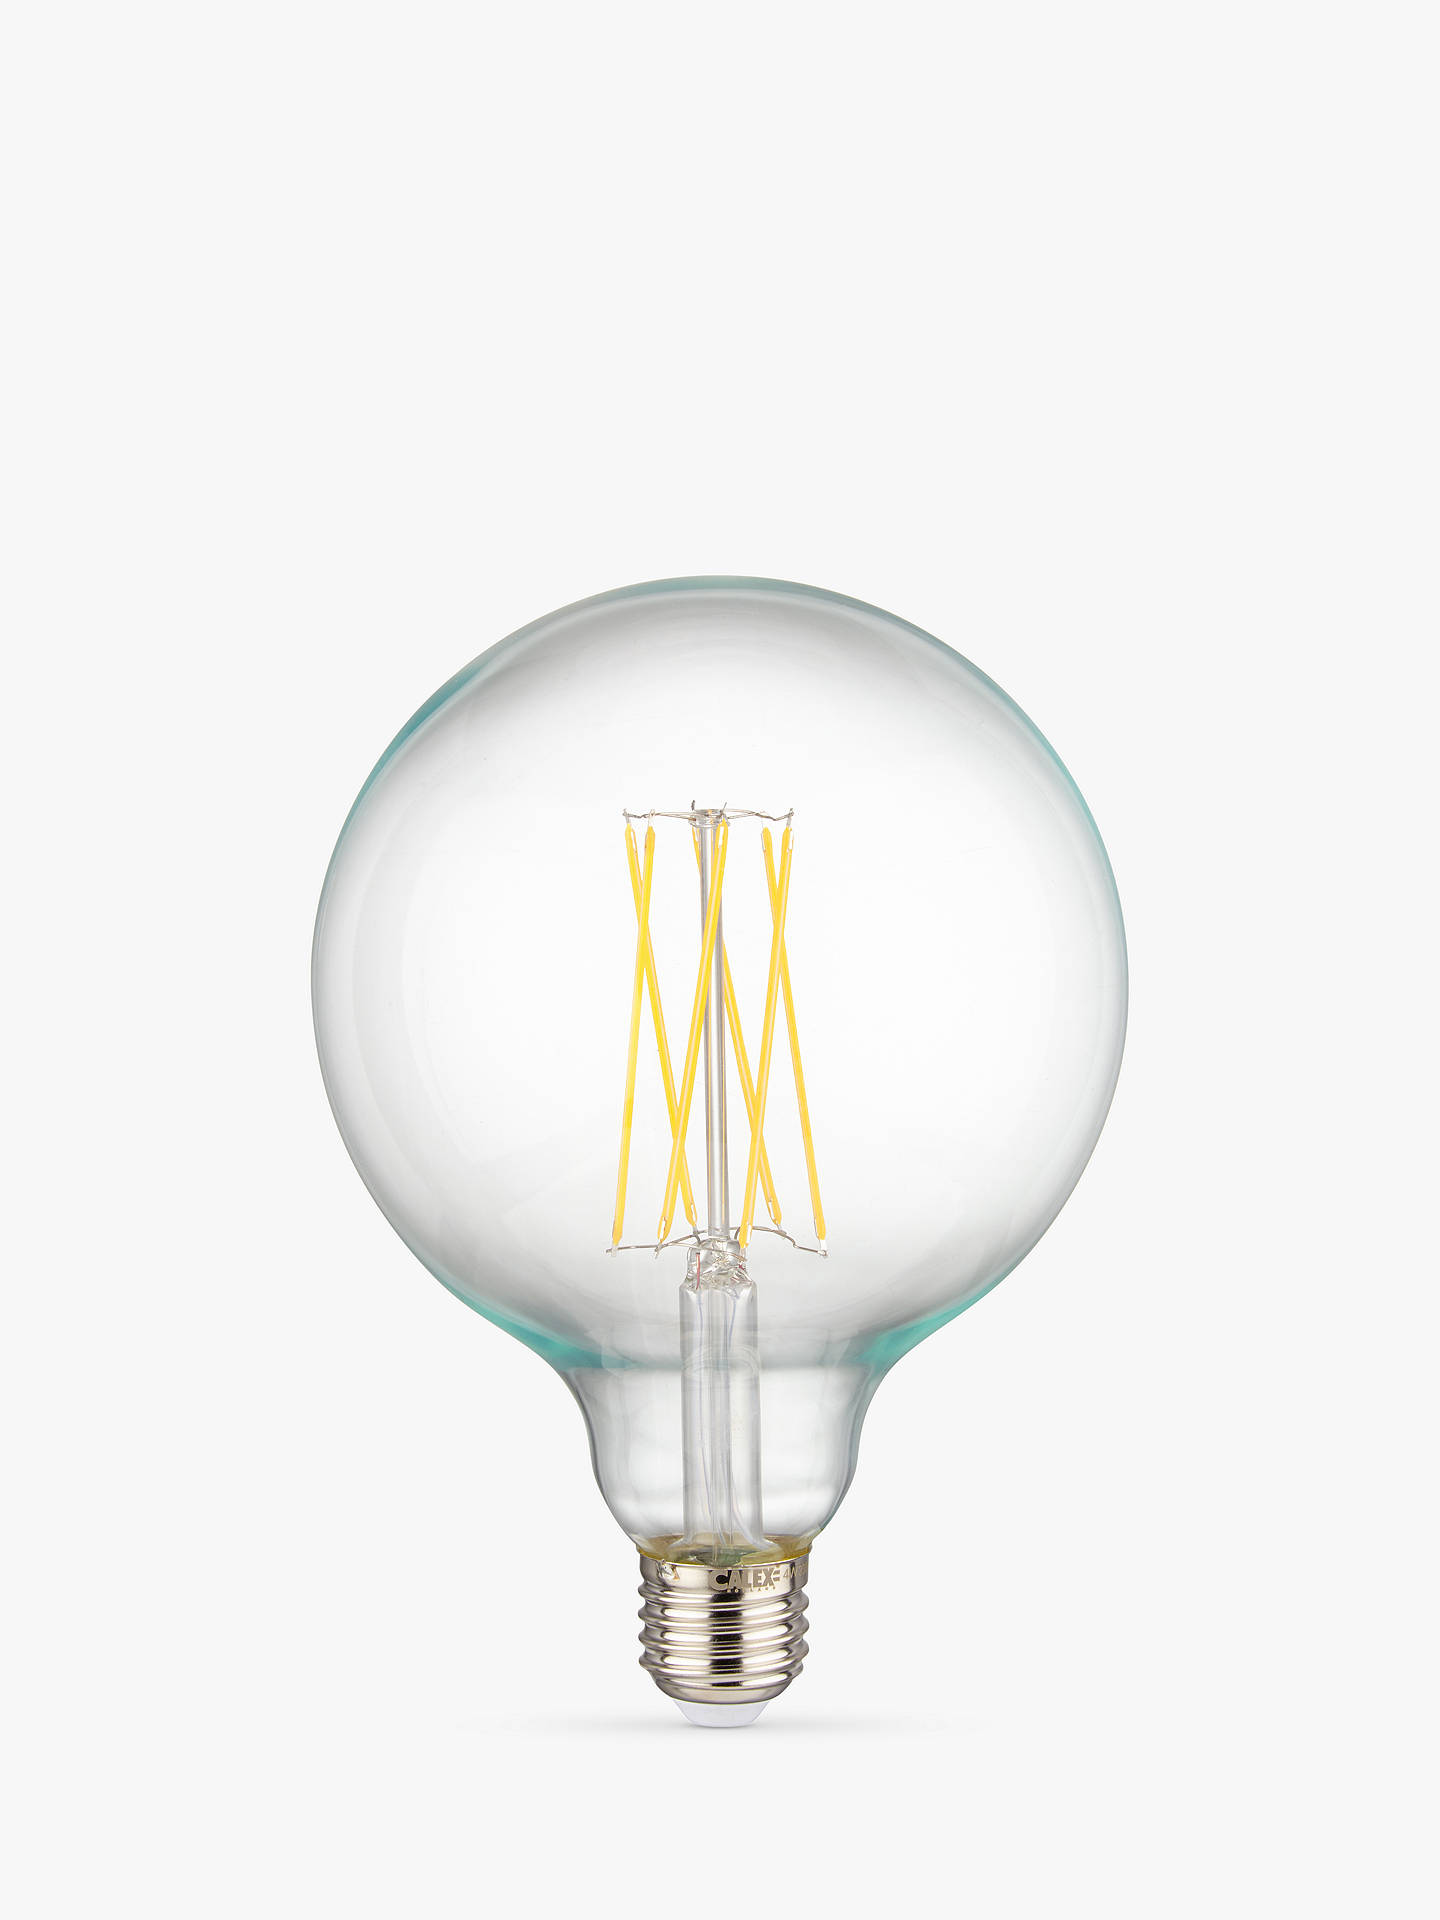 BuyCalex 4W ES Dimmable Globe LED Filament Bulb, Clear Online at johnlewis.com